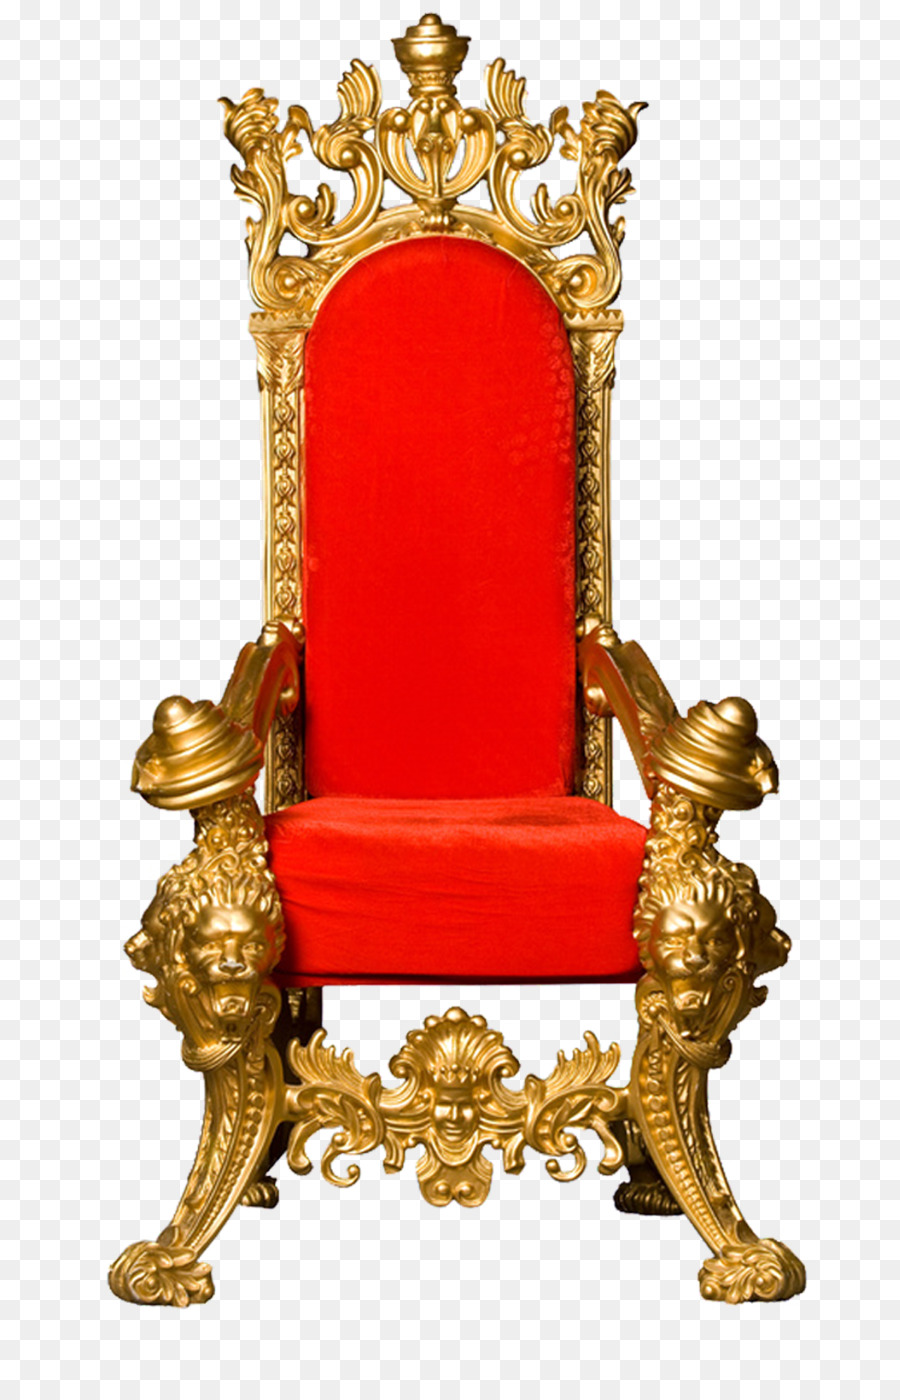 King On A Throne Png & Free King On A Throne.png Transparent.